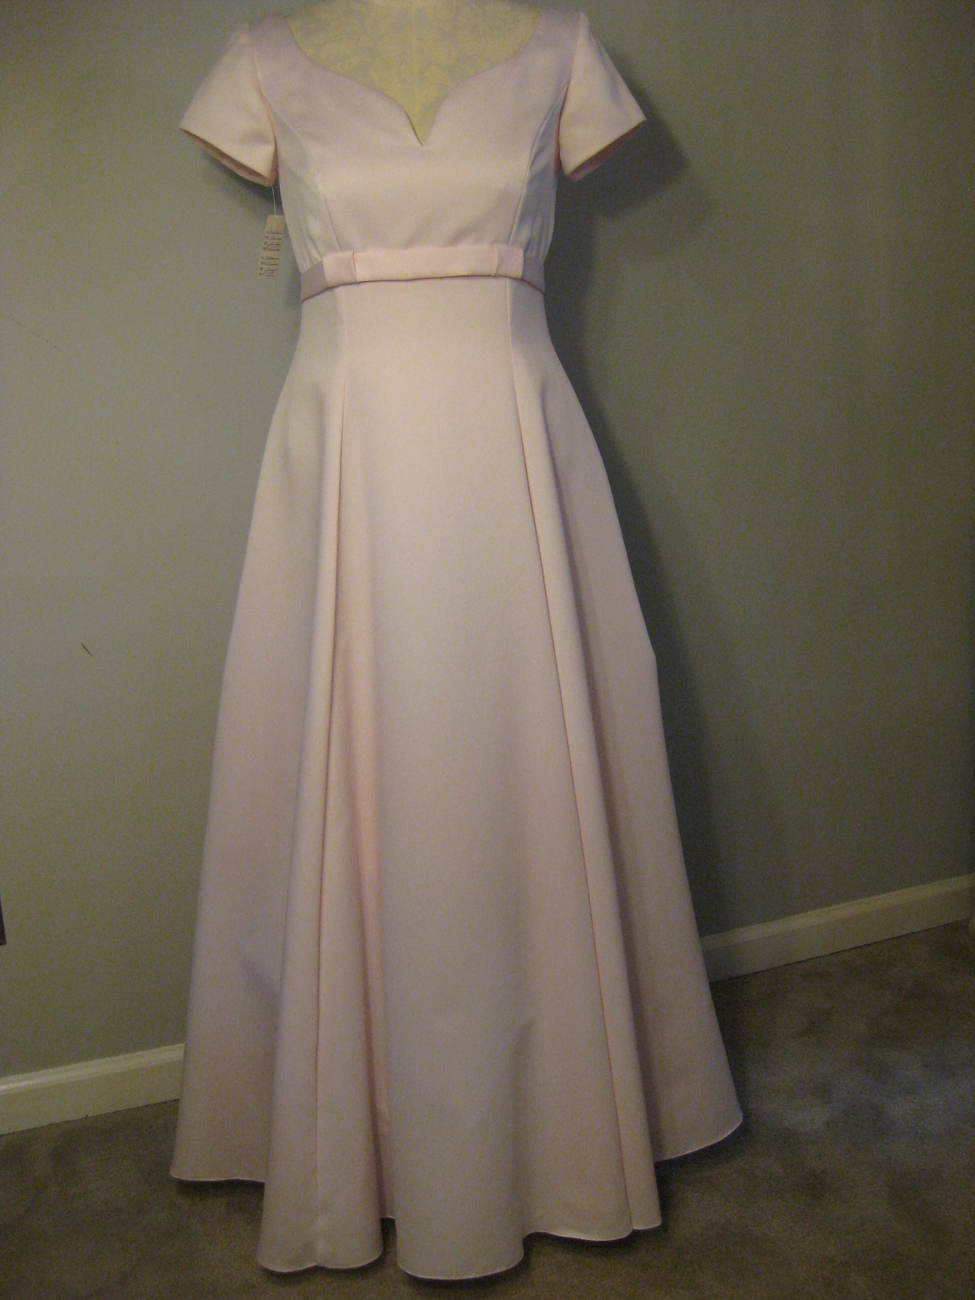 Formal Pink Satin Gown By Jordan Size 11-12 NWT